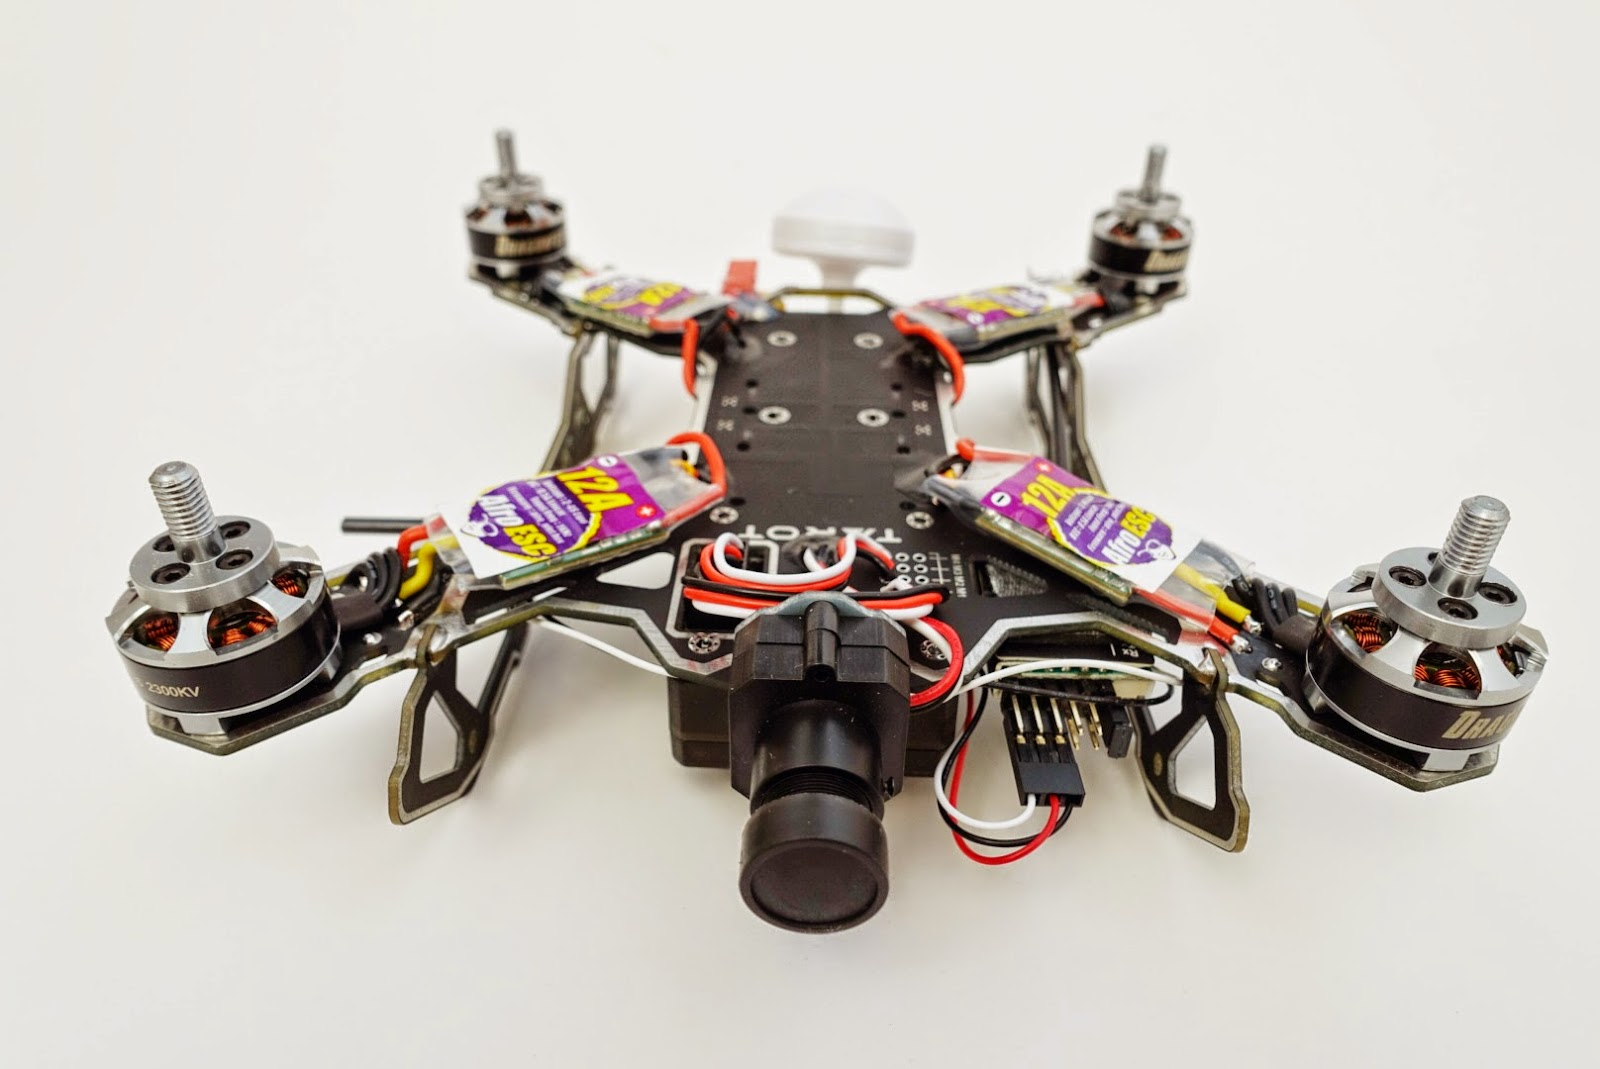 tarot 200 mini wiring diagram fpv model tarot 200mm mini quadcopter tl200a chrysler 200 headlight wiring diagram